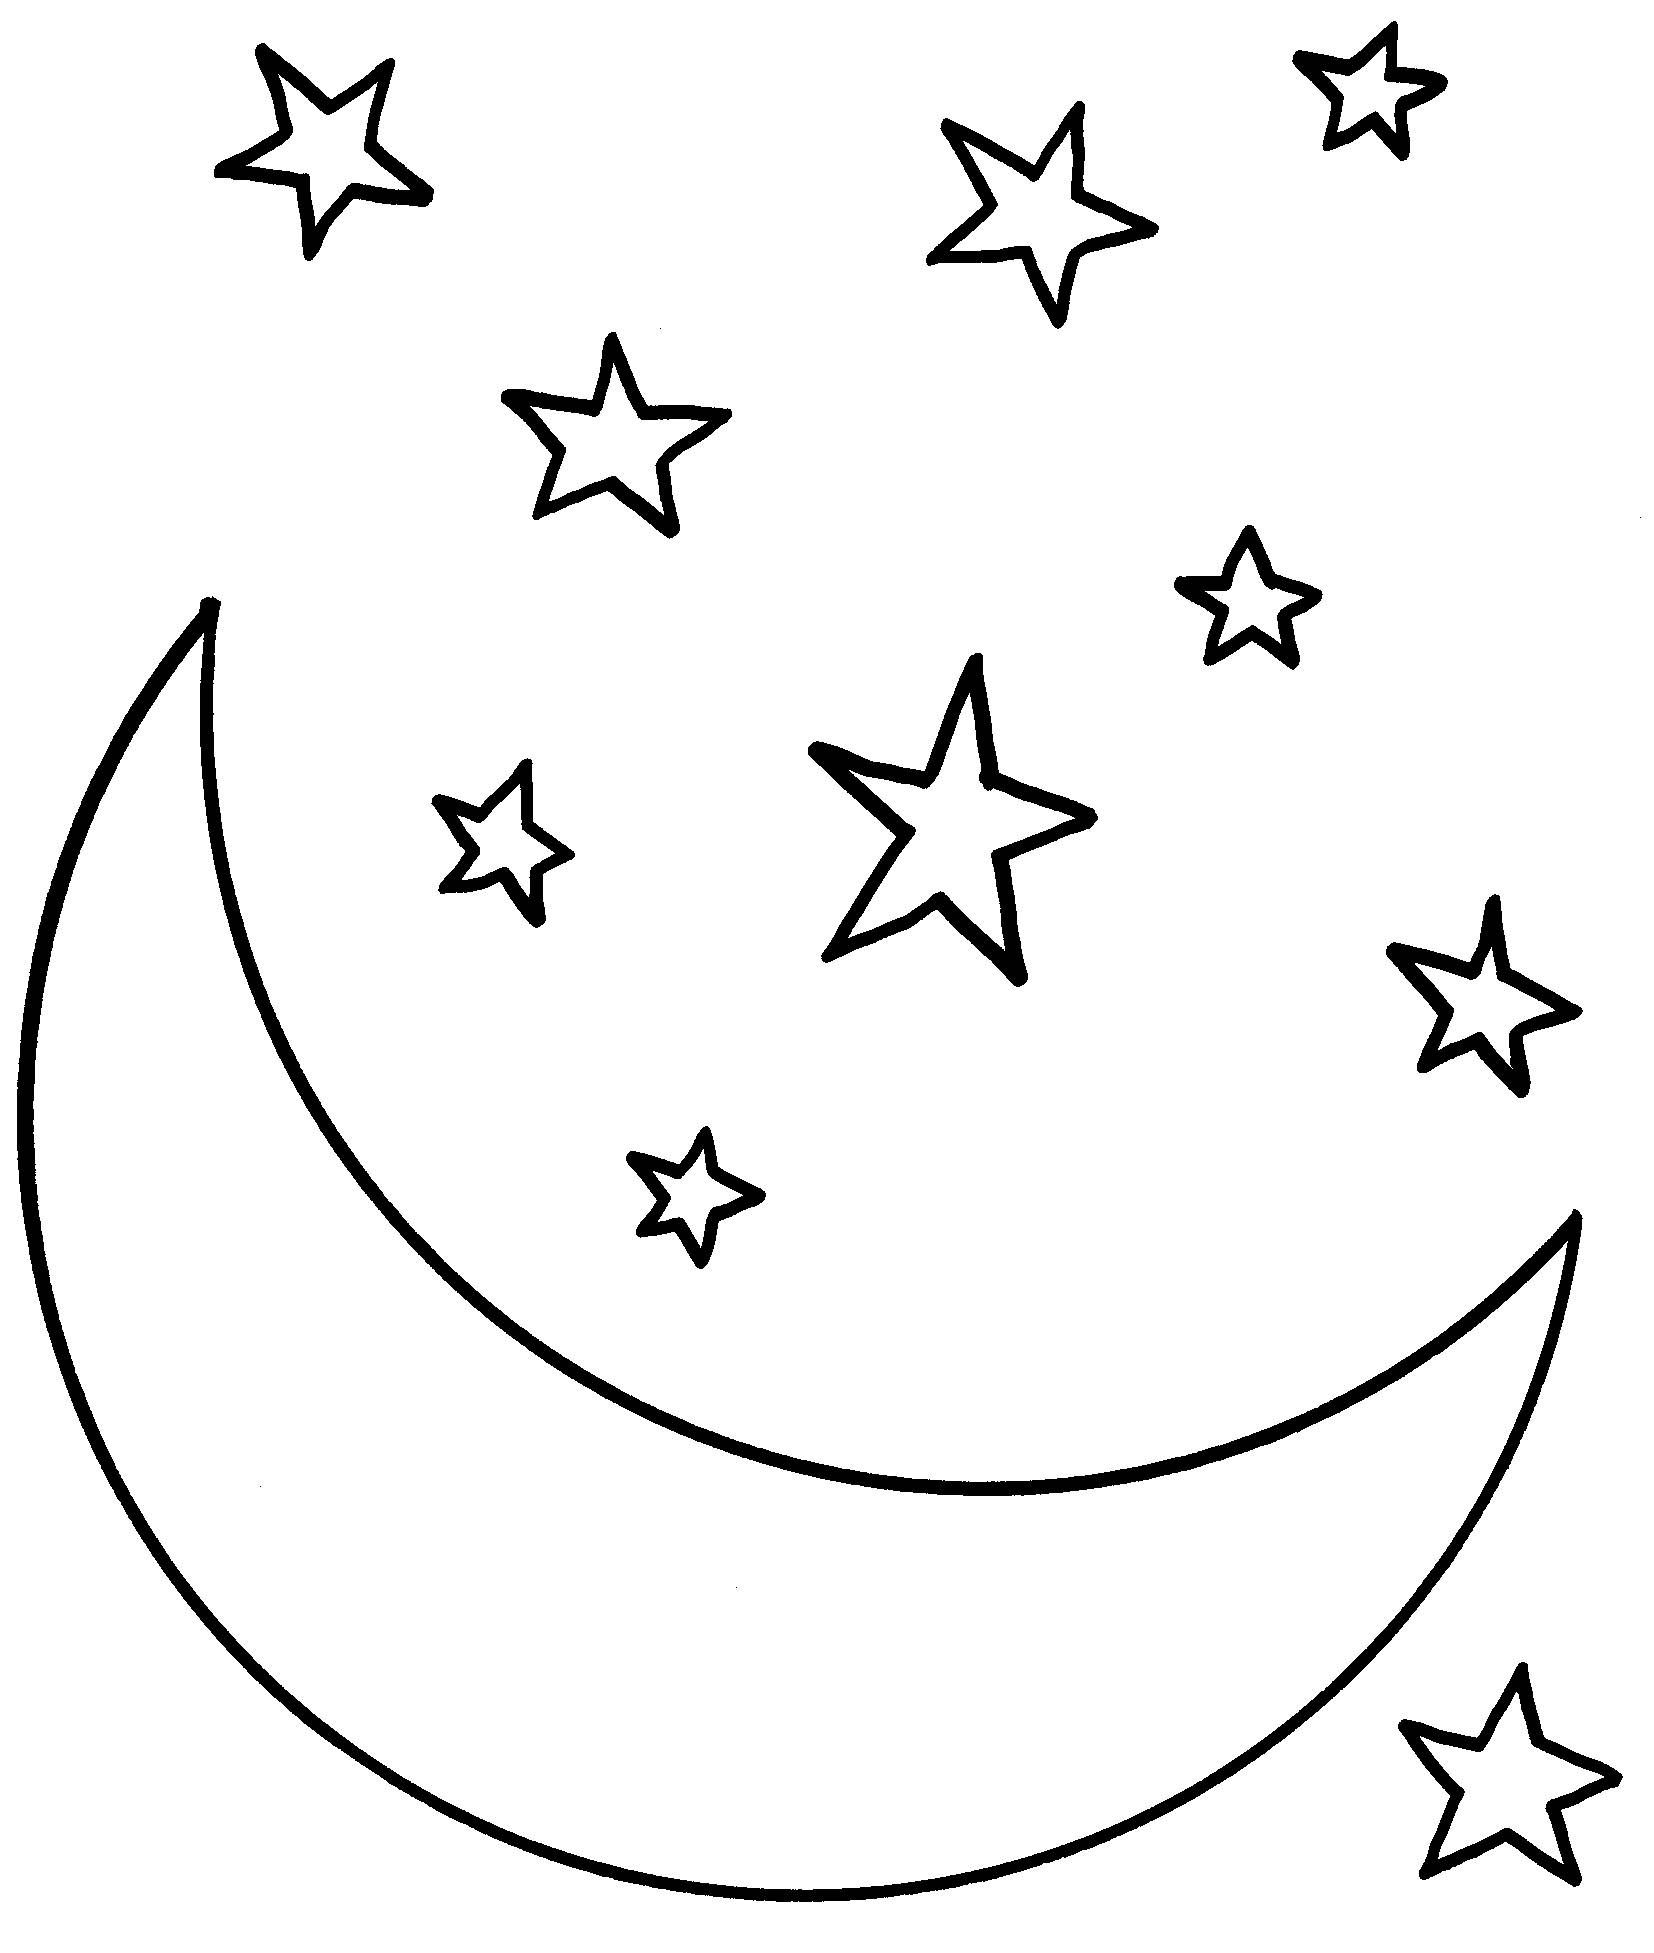 1654x1953 Free Coloring Pages Stars And Moon Coloring Pages Free Of Sky